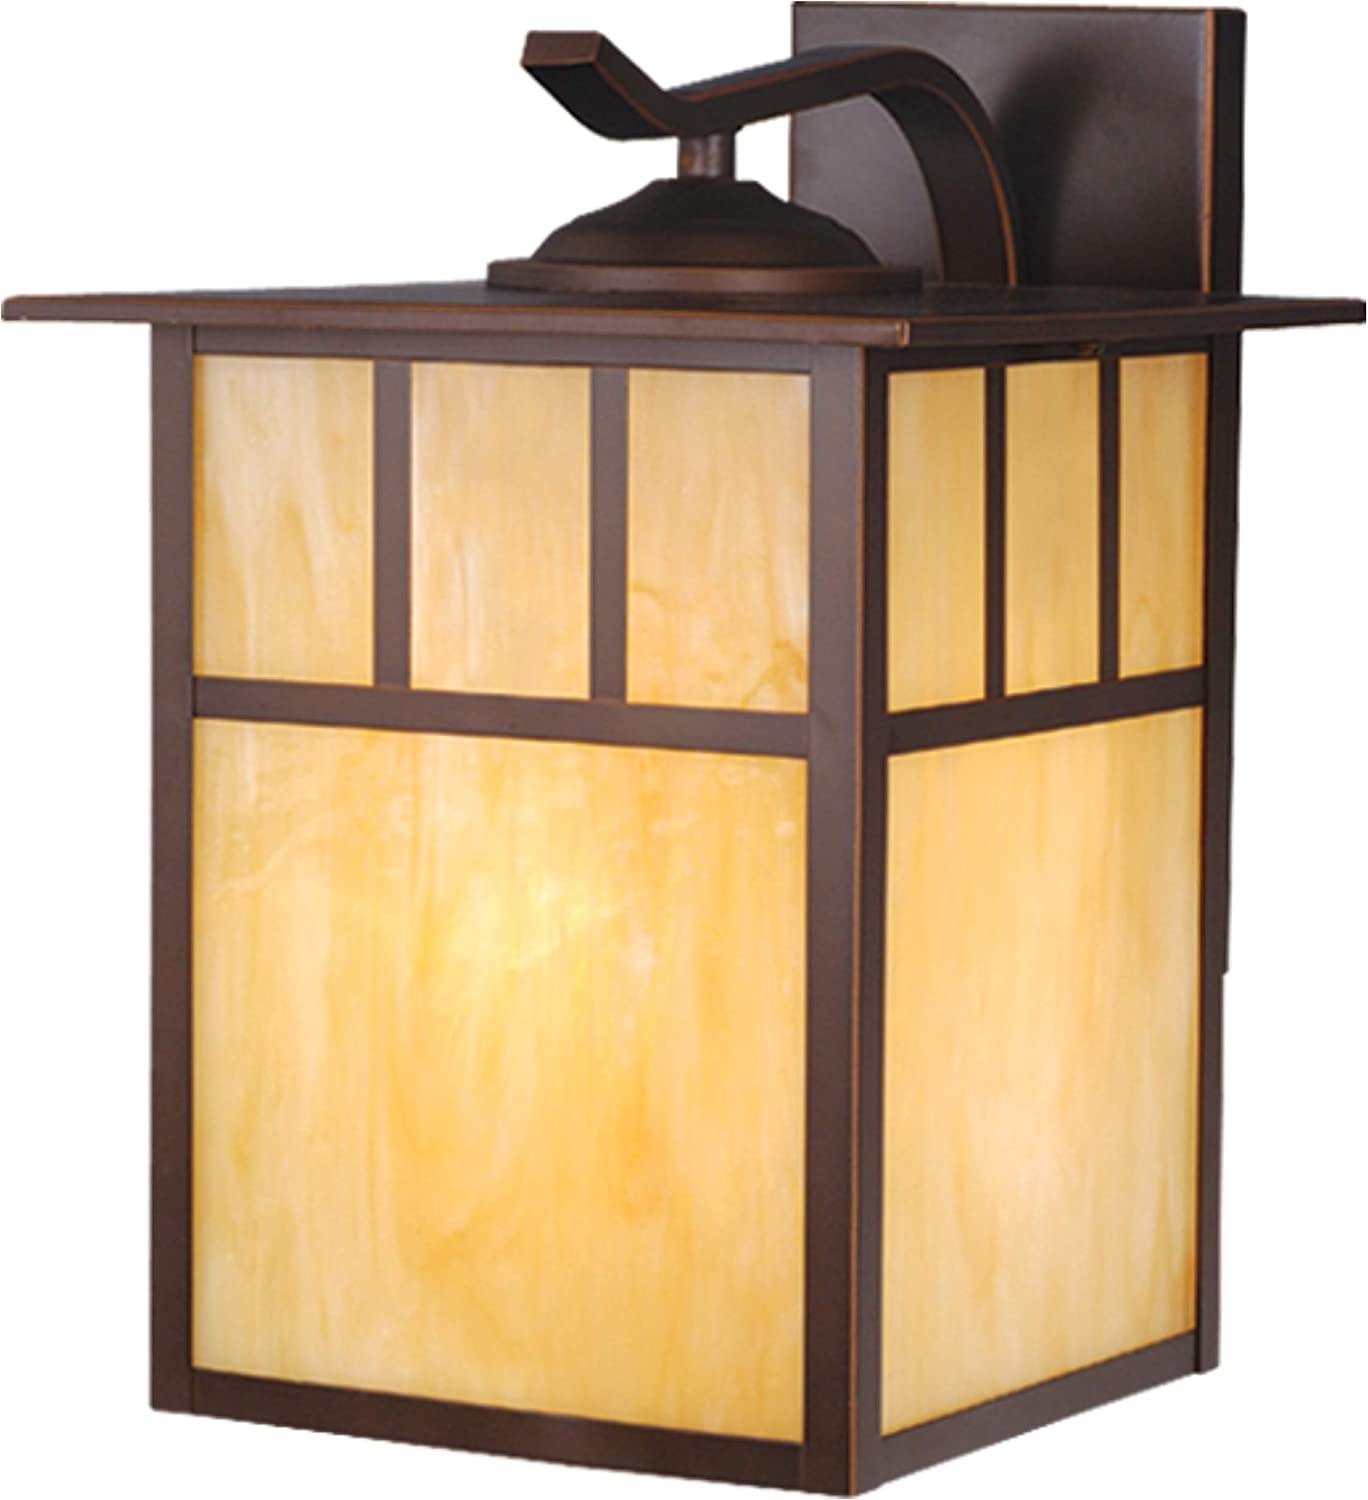 """VAXCEL Indoor Outdoor Wall Light - Mission Oil Burnished Bronze Craftsman 9"""" Front Porch Light with Honey Opal Glass, Wall Mount Garage Coach Light, Front Porch Lantern, Outdoor Carriage Light"""